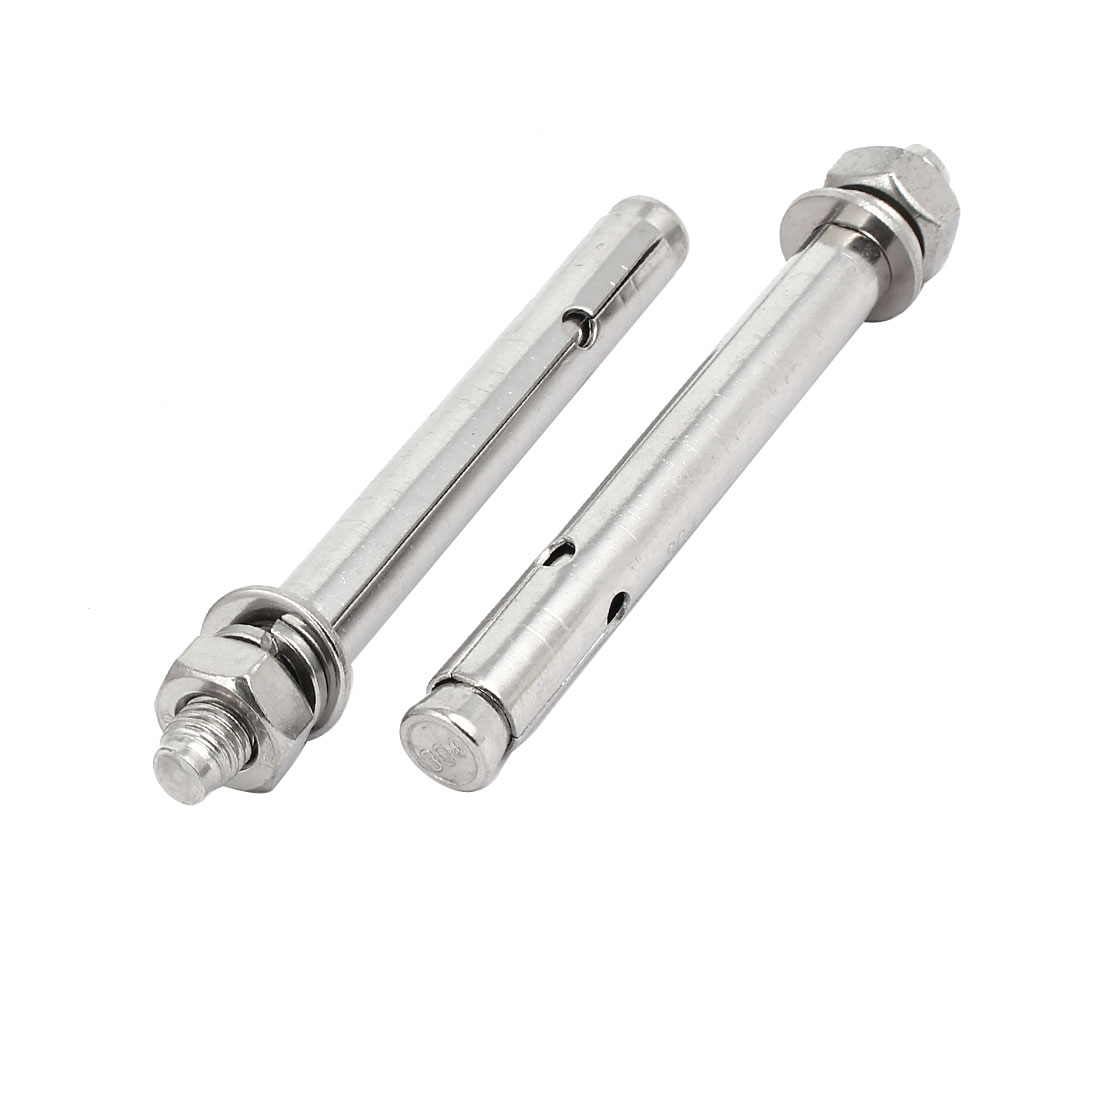 M10x120mm 304 Stainless Steel Air Condition Fitting Sleeve Anchor Expansion Bolt 2pcs